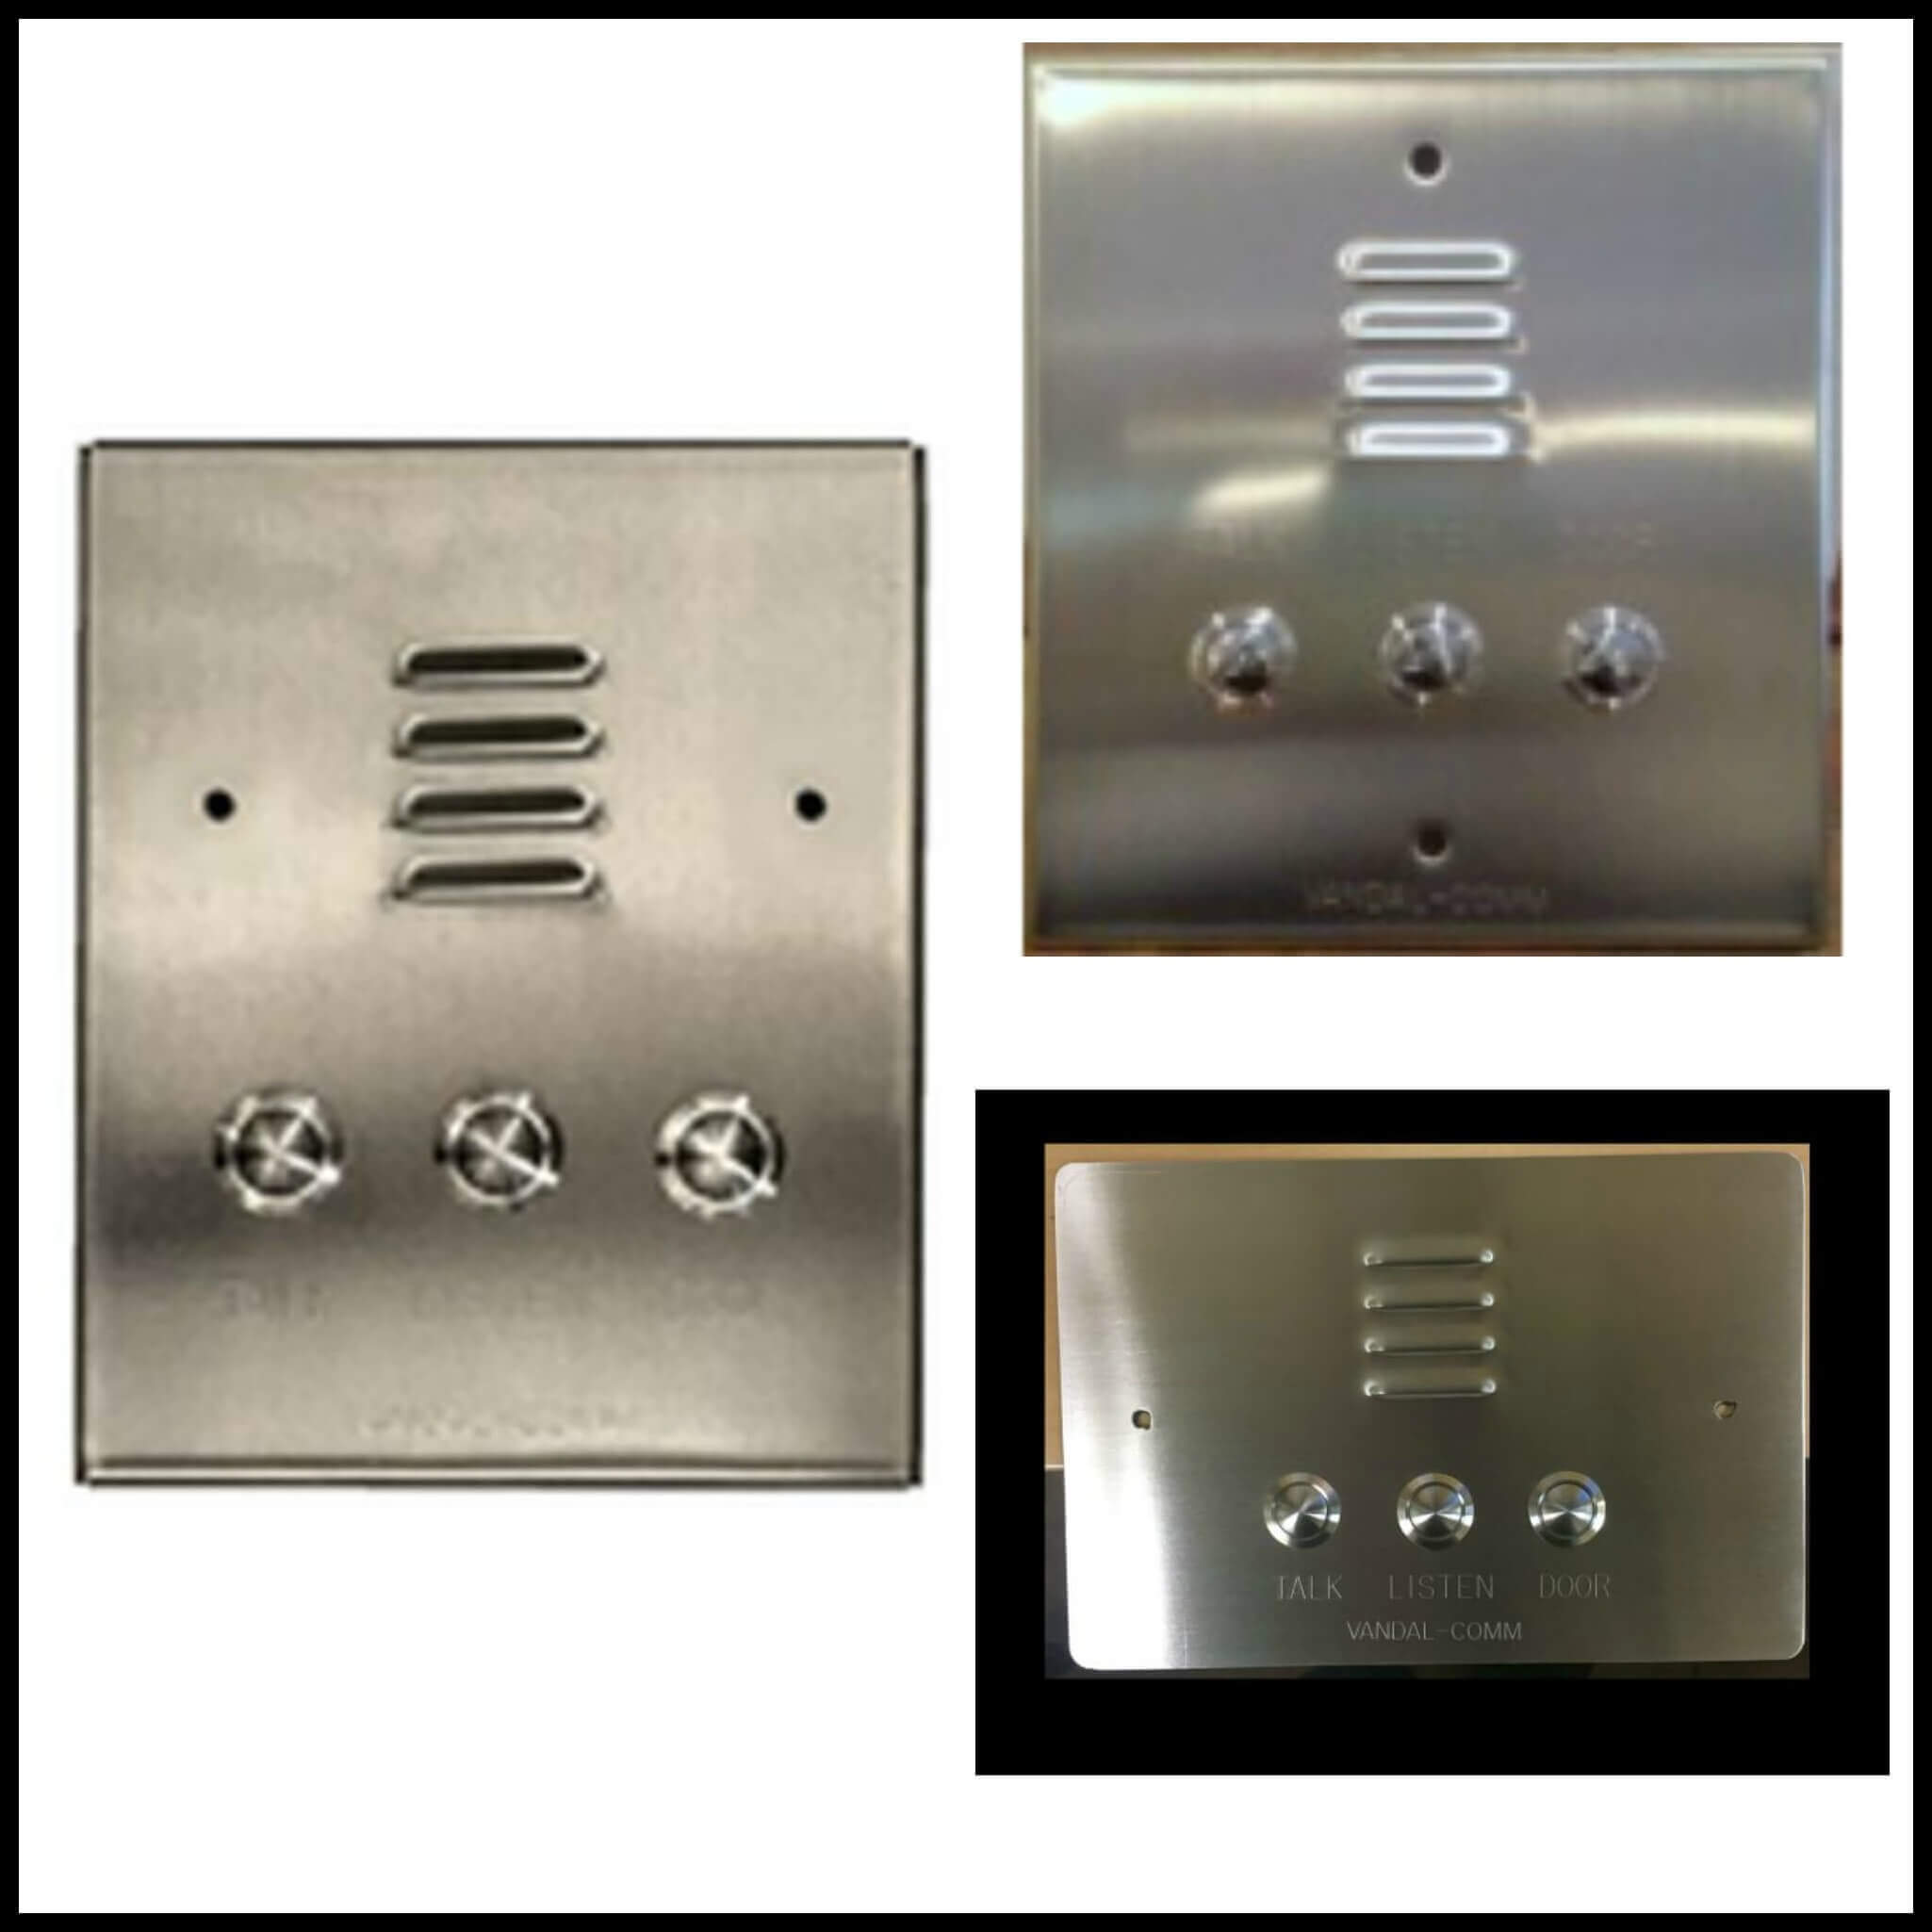 Apartment Intercom Systems Entry Jeron Wiring Diagram Stainless Steel Stations